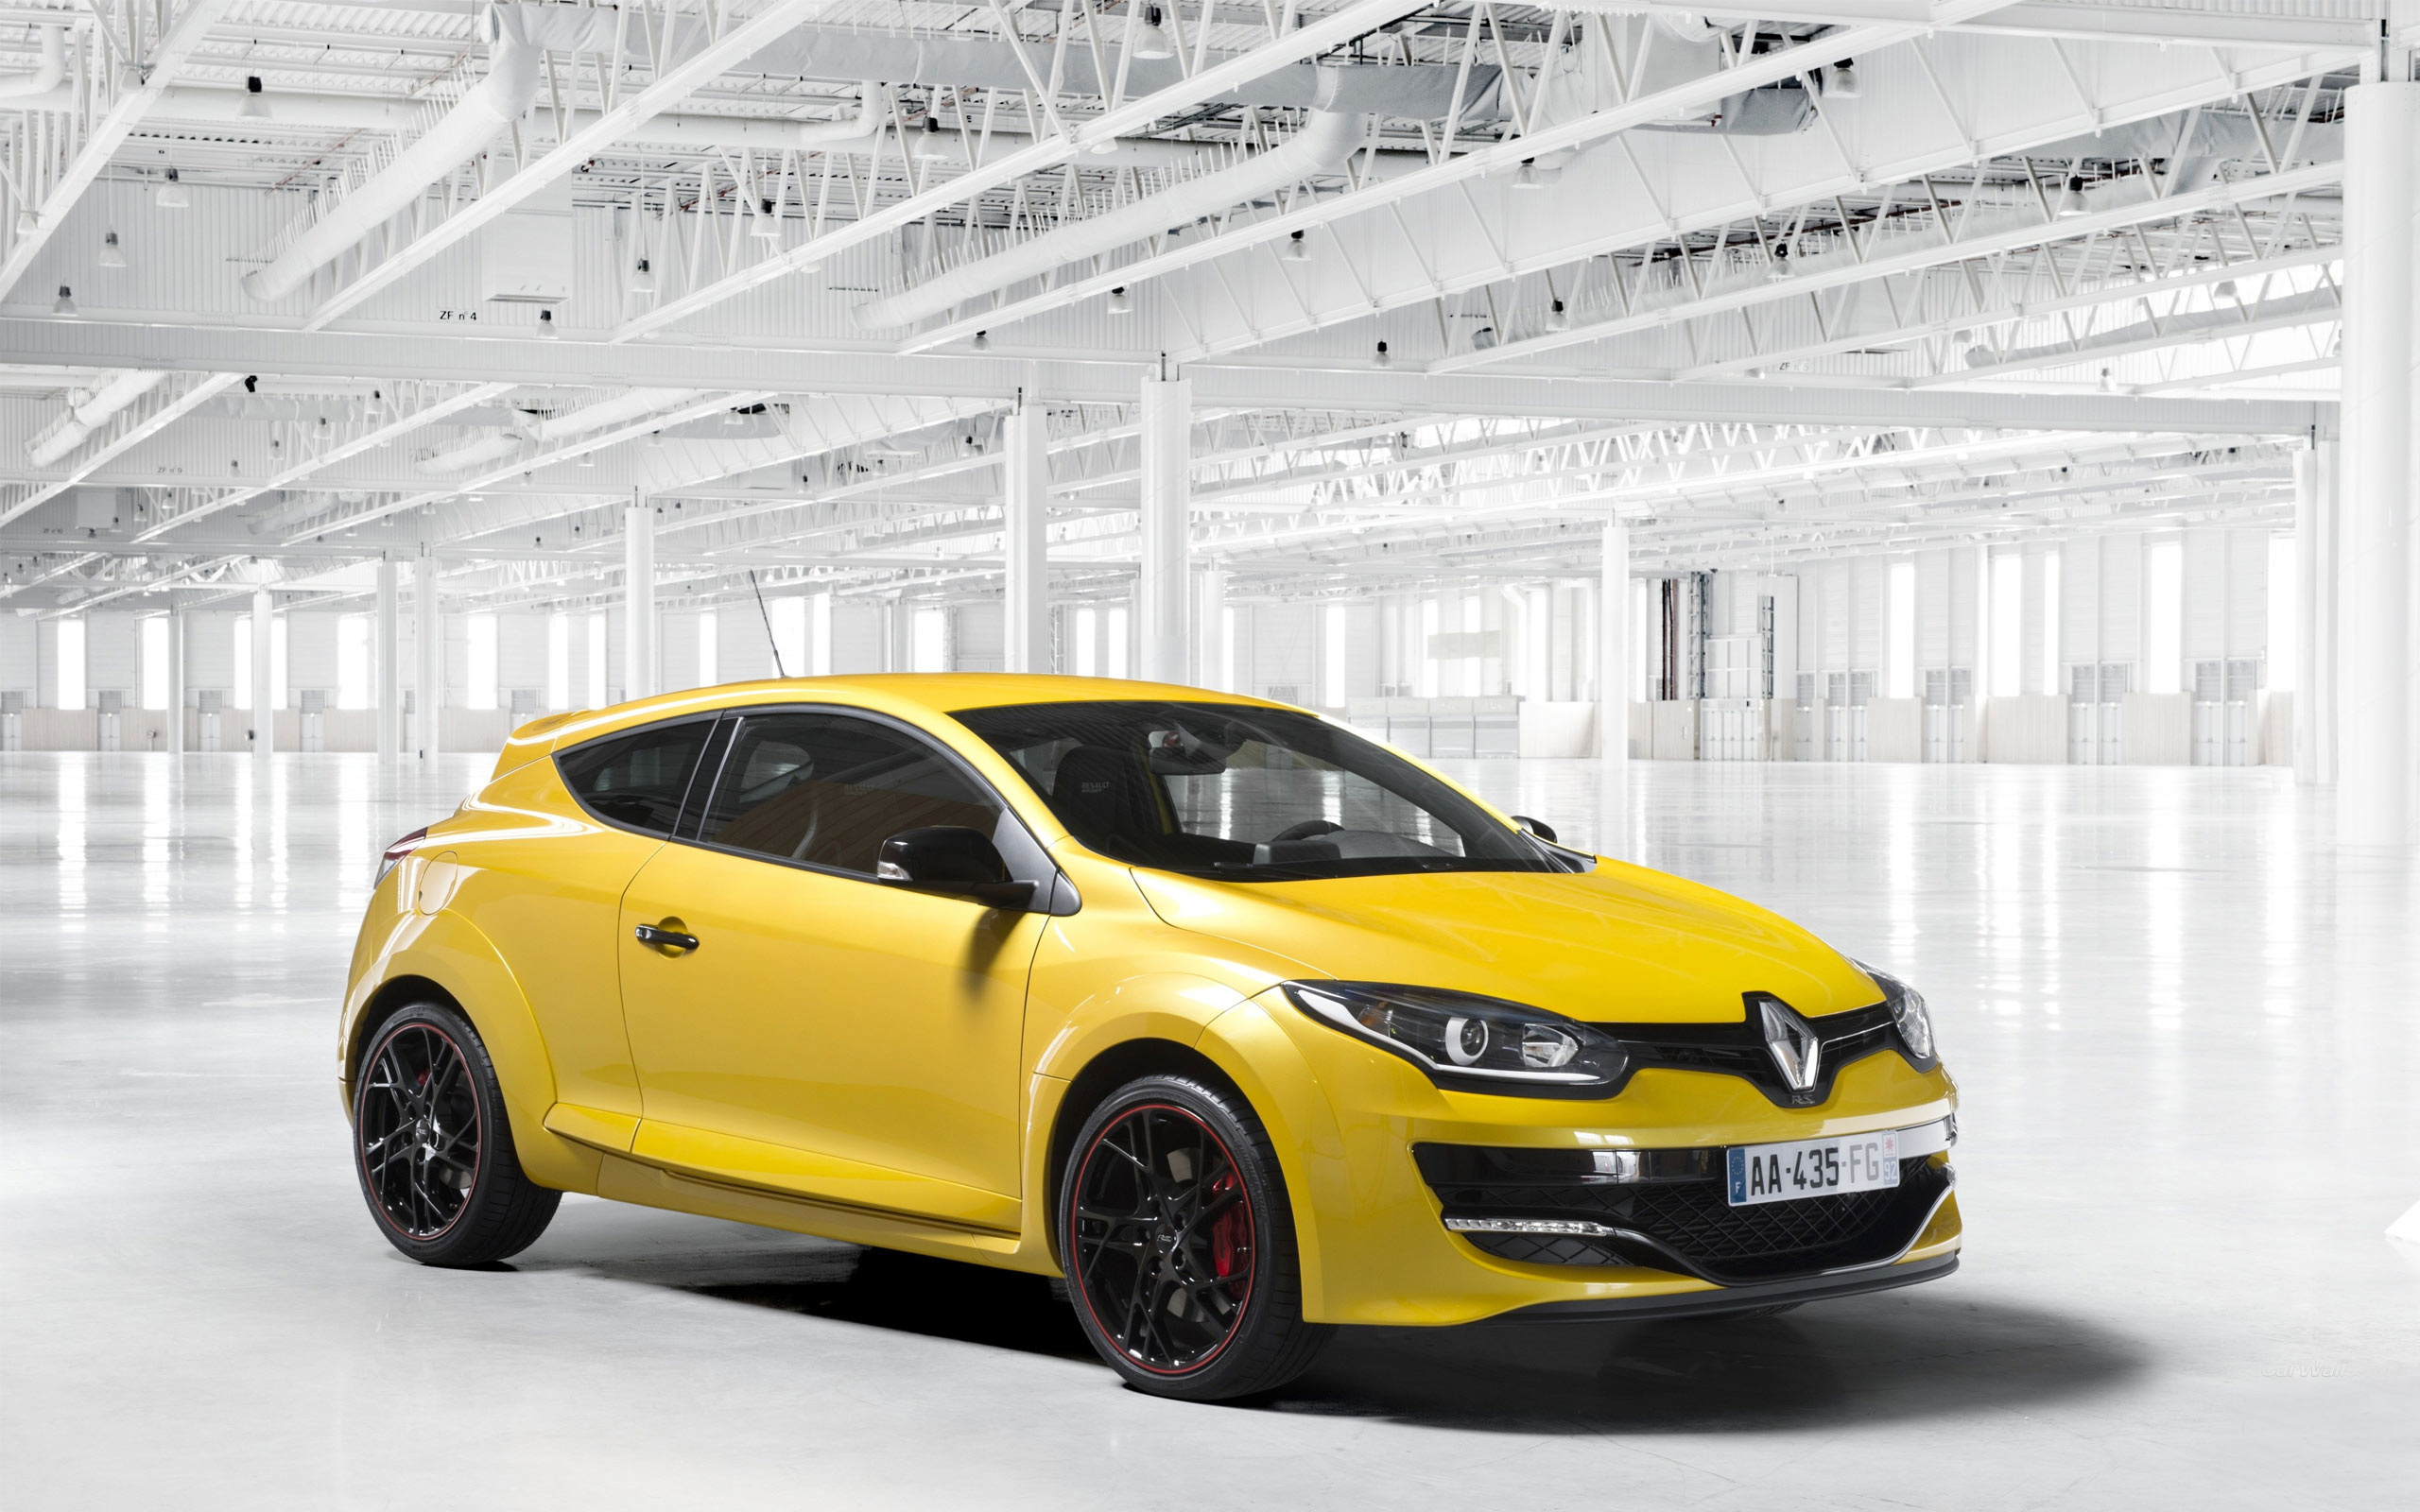 2014 renault megane rs wallpaper hd car wallpapers. Black Bedroom Furniture Sets. Home Design Ideas